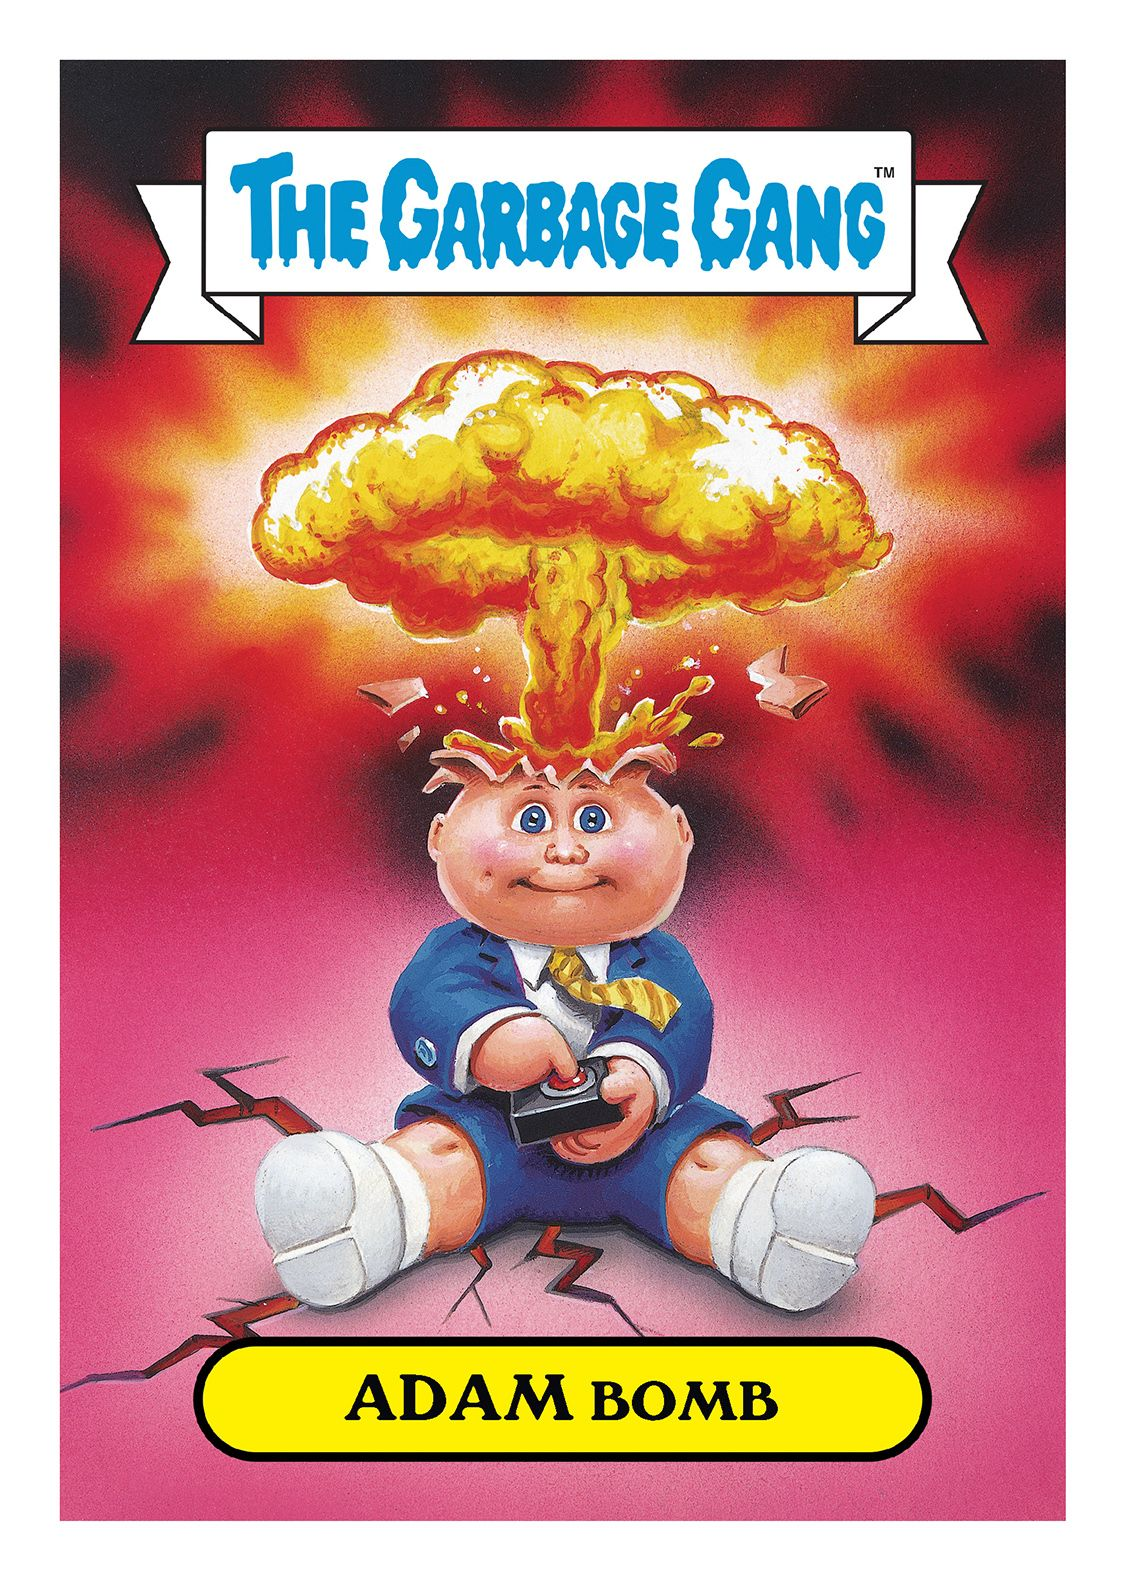 Garbage Pail Kids 2015 Comic Con Exclusive Set Of 50 5x7 Jumbo Cards Entertainment Non Sports Cards Garbage Pail Kids Garbage Pail Kids Cards Kids Magnets